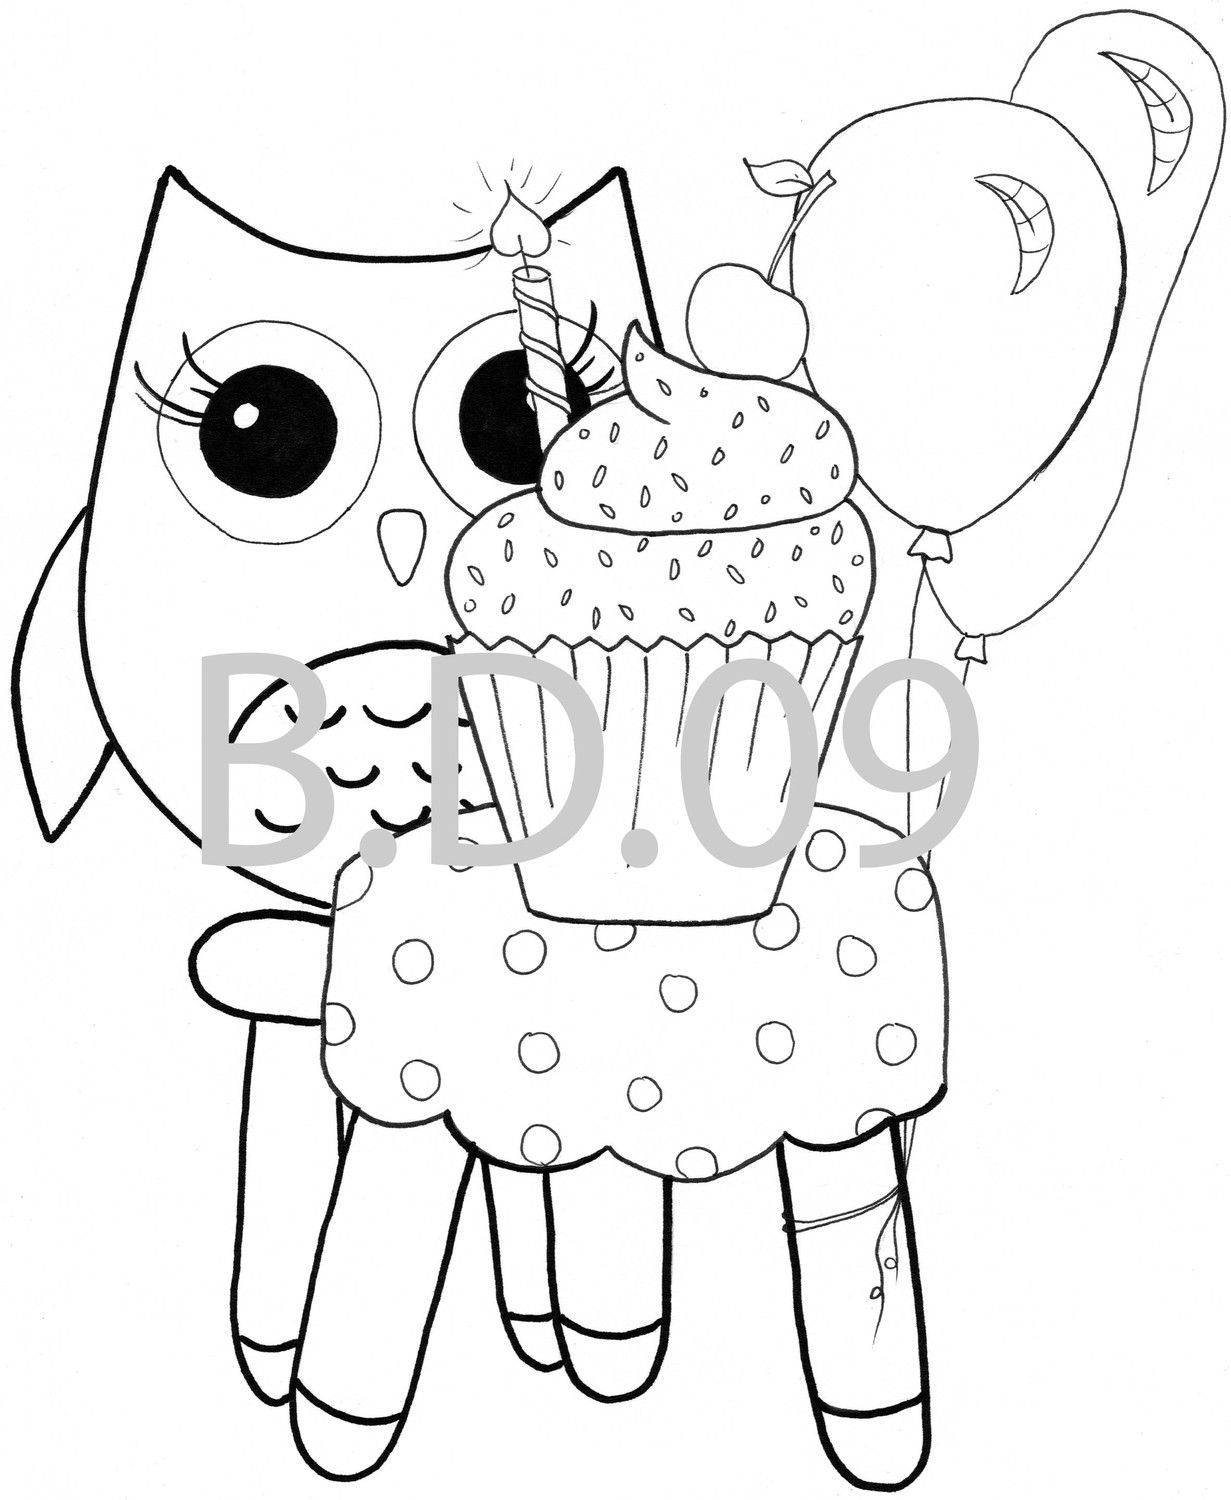 Cute Owl Coloring Page Cute Coloring Pages Coloring Pages Owl